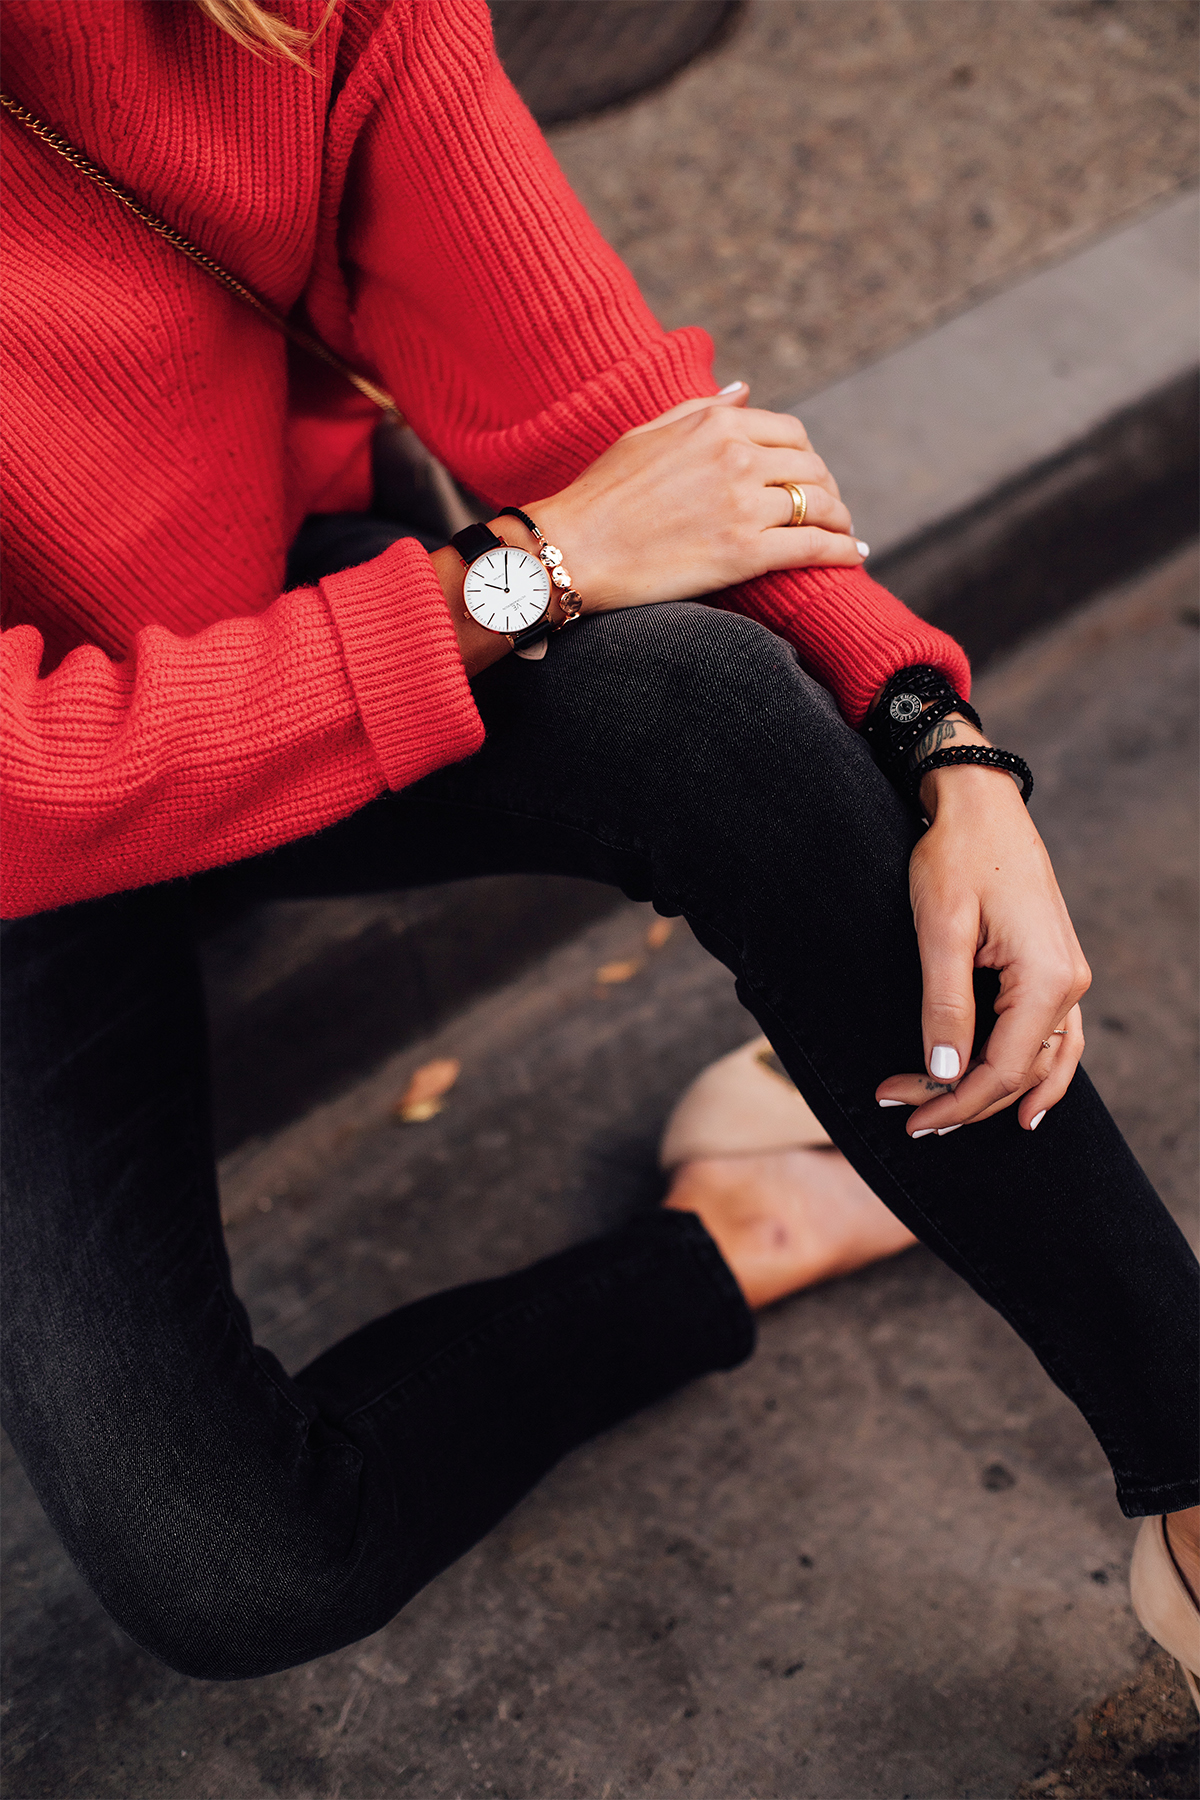 Woman Wearing AllSaints Red Sweater Mother Black Skinny Jeans Nude Pumps Victoria Emerson Black Rose Gold Watch Fashion Jackson San Diego Fashion Blogger Street Style